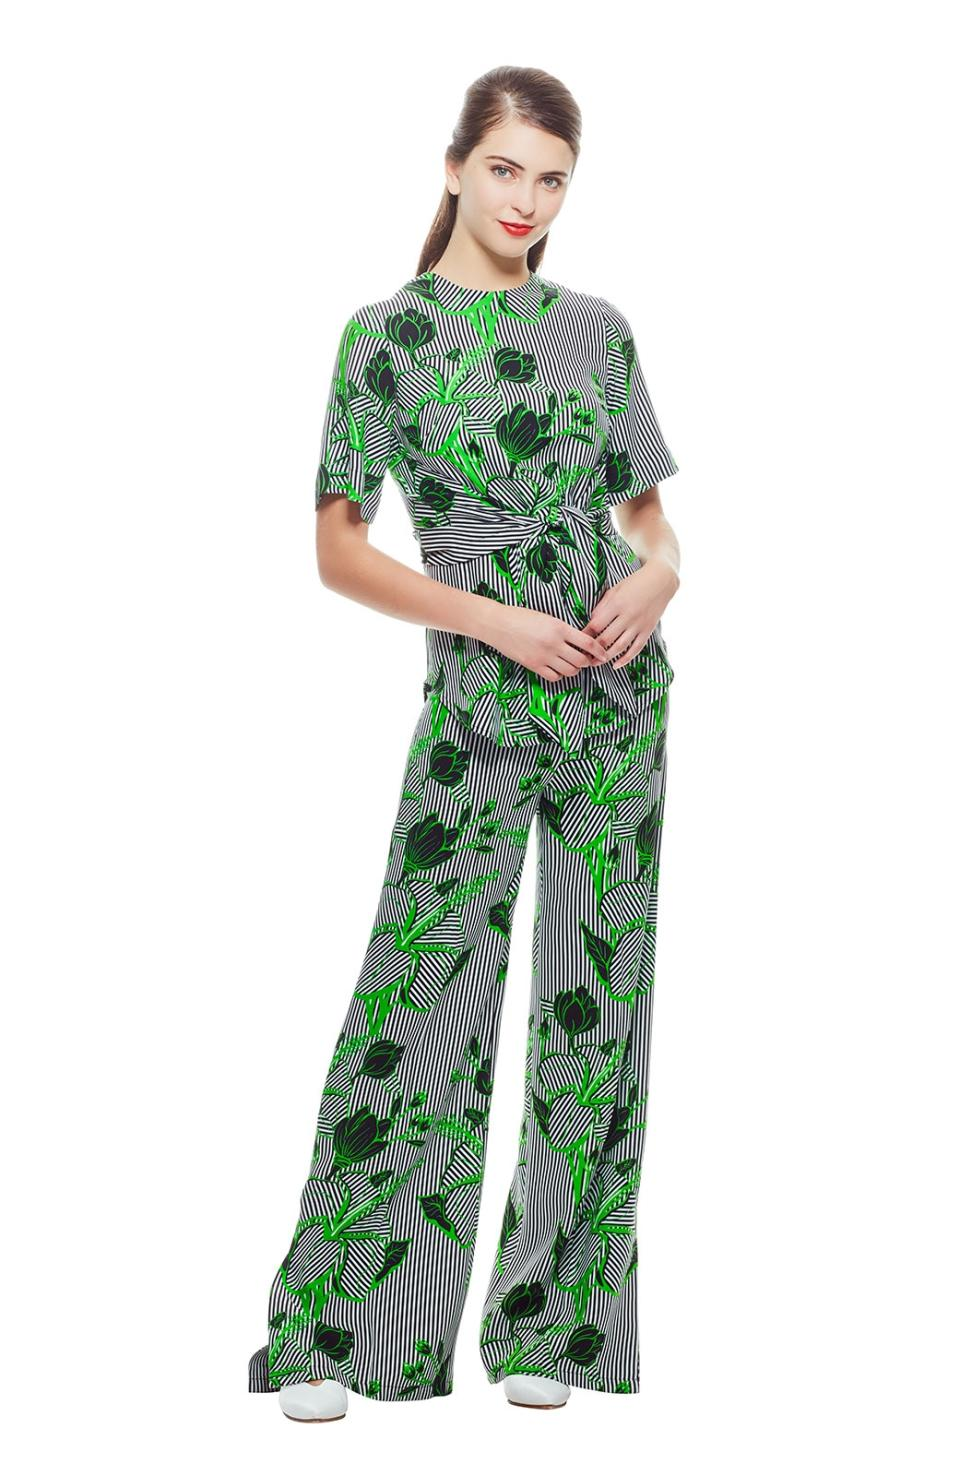 11580232ba0 Lyst - Lela Rose Linear Floral Printed Crepe Front Tie Top With ...